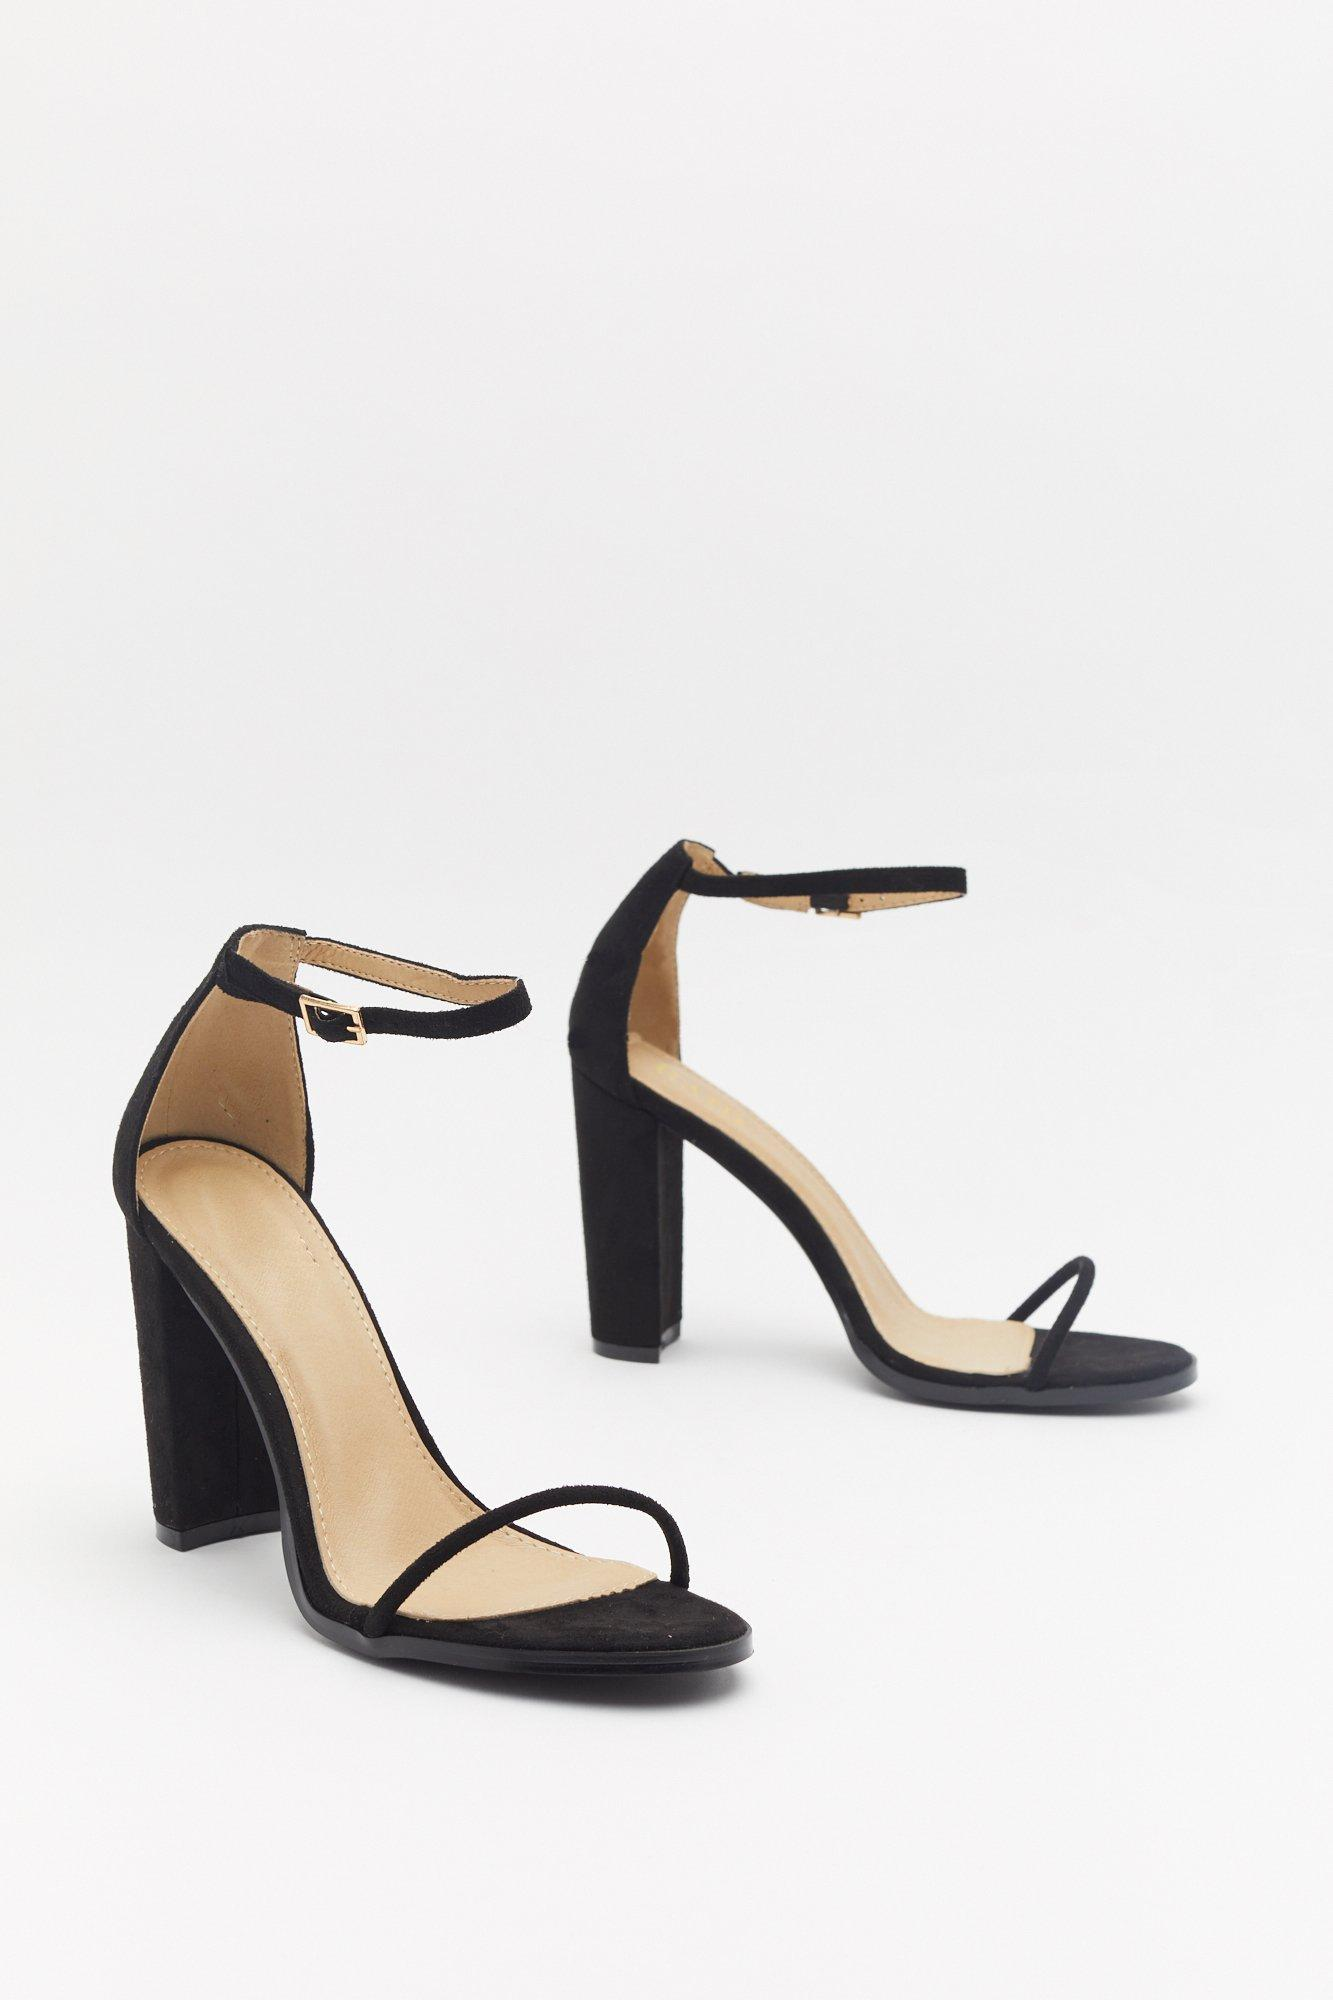 Strappy That You're Here Faux Suede Block Heels | Nasty Gal